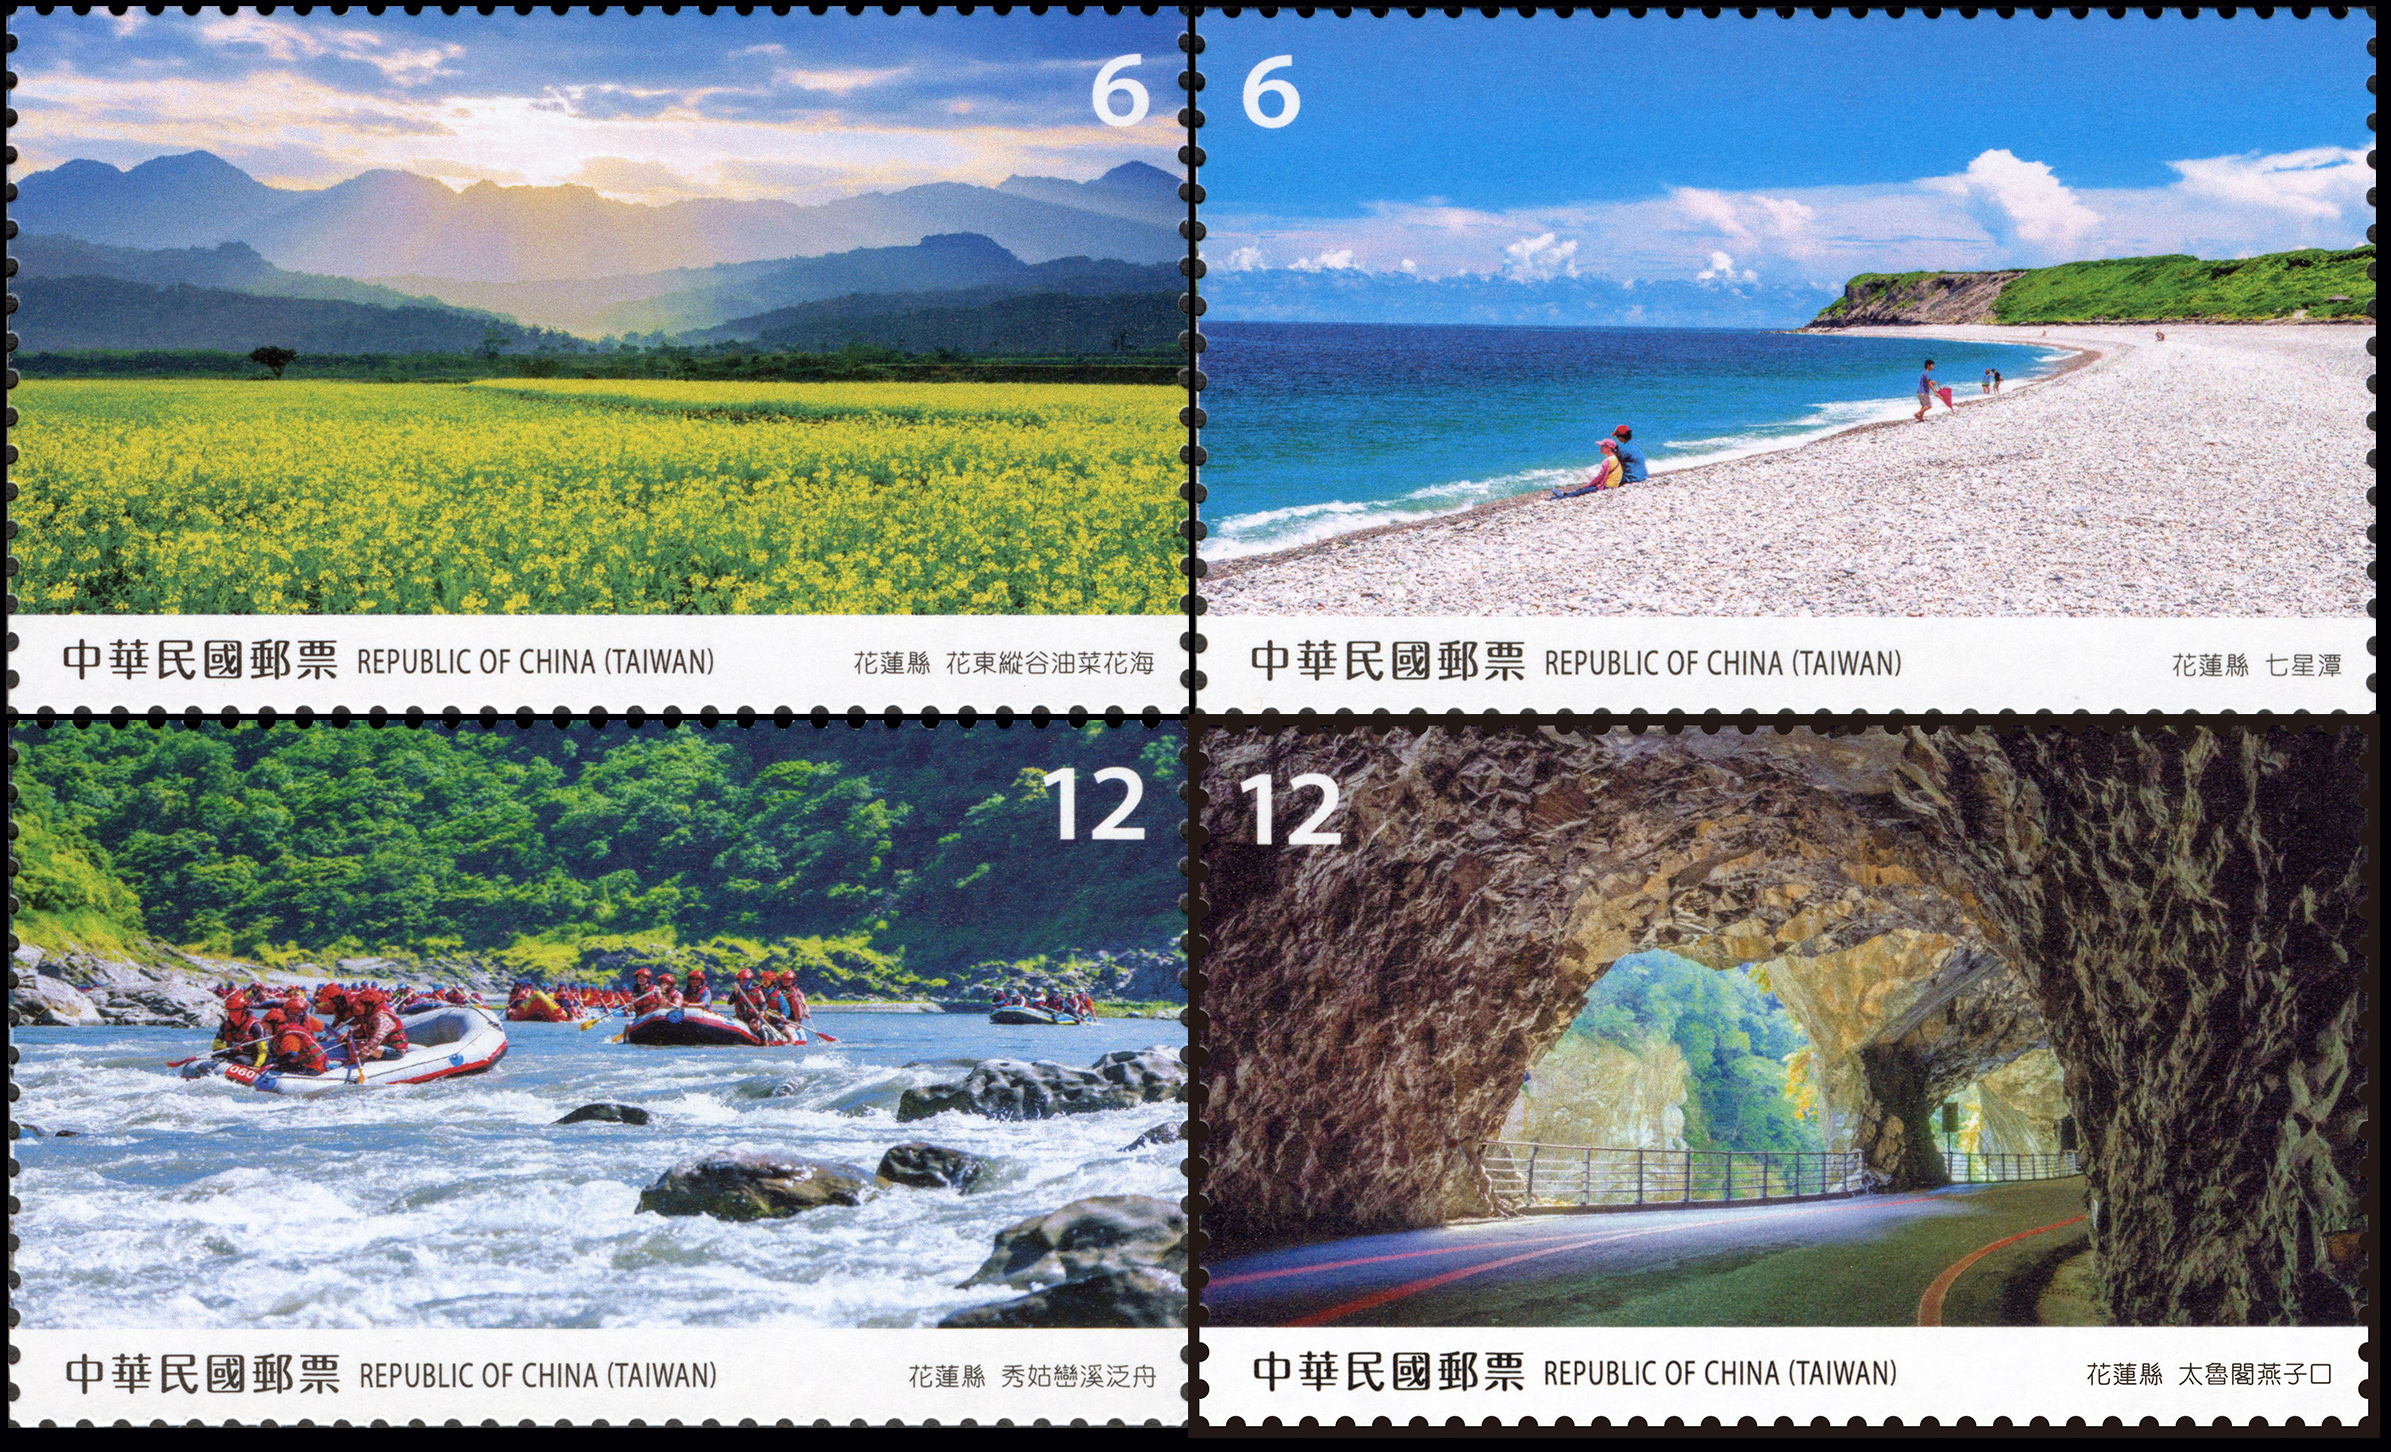 Taiwan Scenery Postage Stamps — Hualien County